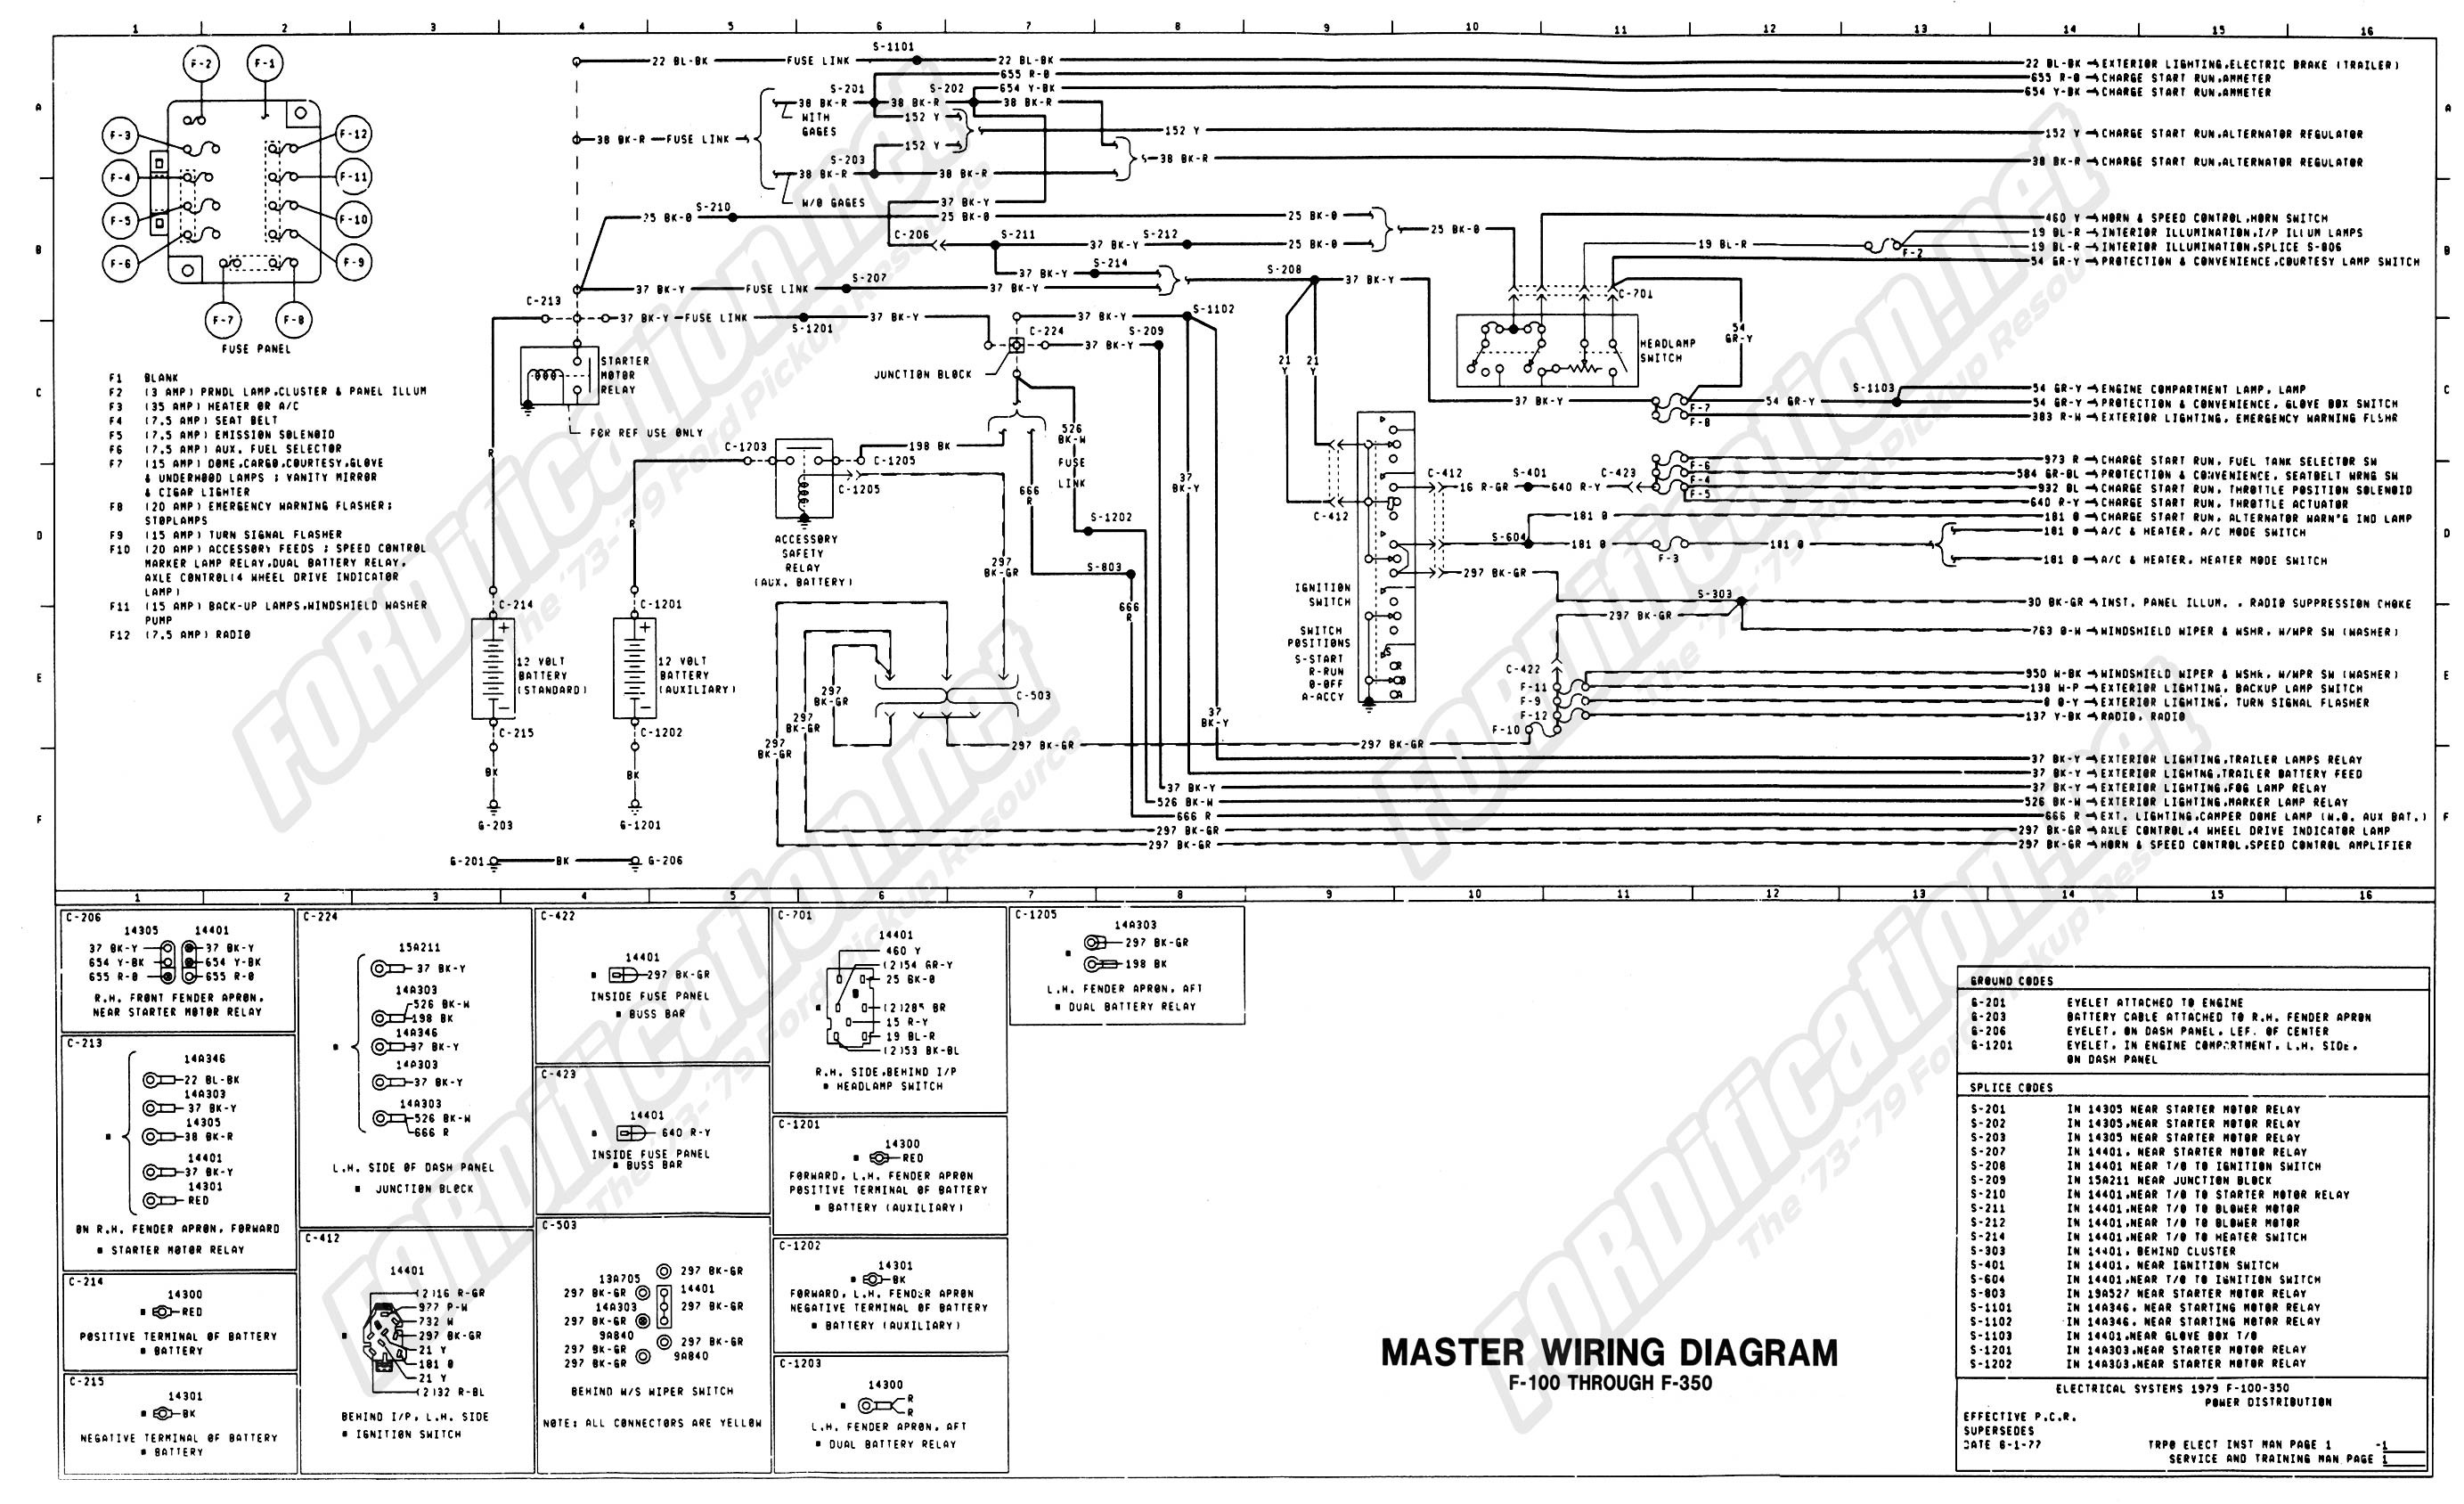 Ford F150 Tail Light Wiring Diagram 1973 1979 ford Truck Wiring Diagrams & Schematics fordification Of Ford F150 Tail Light Wiring Diagram 1995 Chevy Truck Tail Light Wiring Diagram Trusted Wiring Diagram